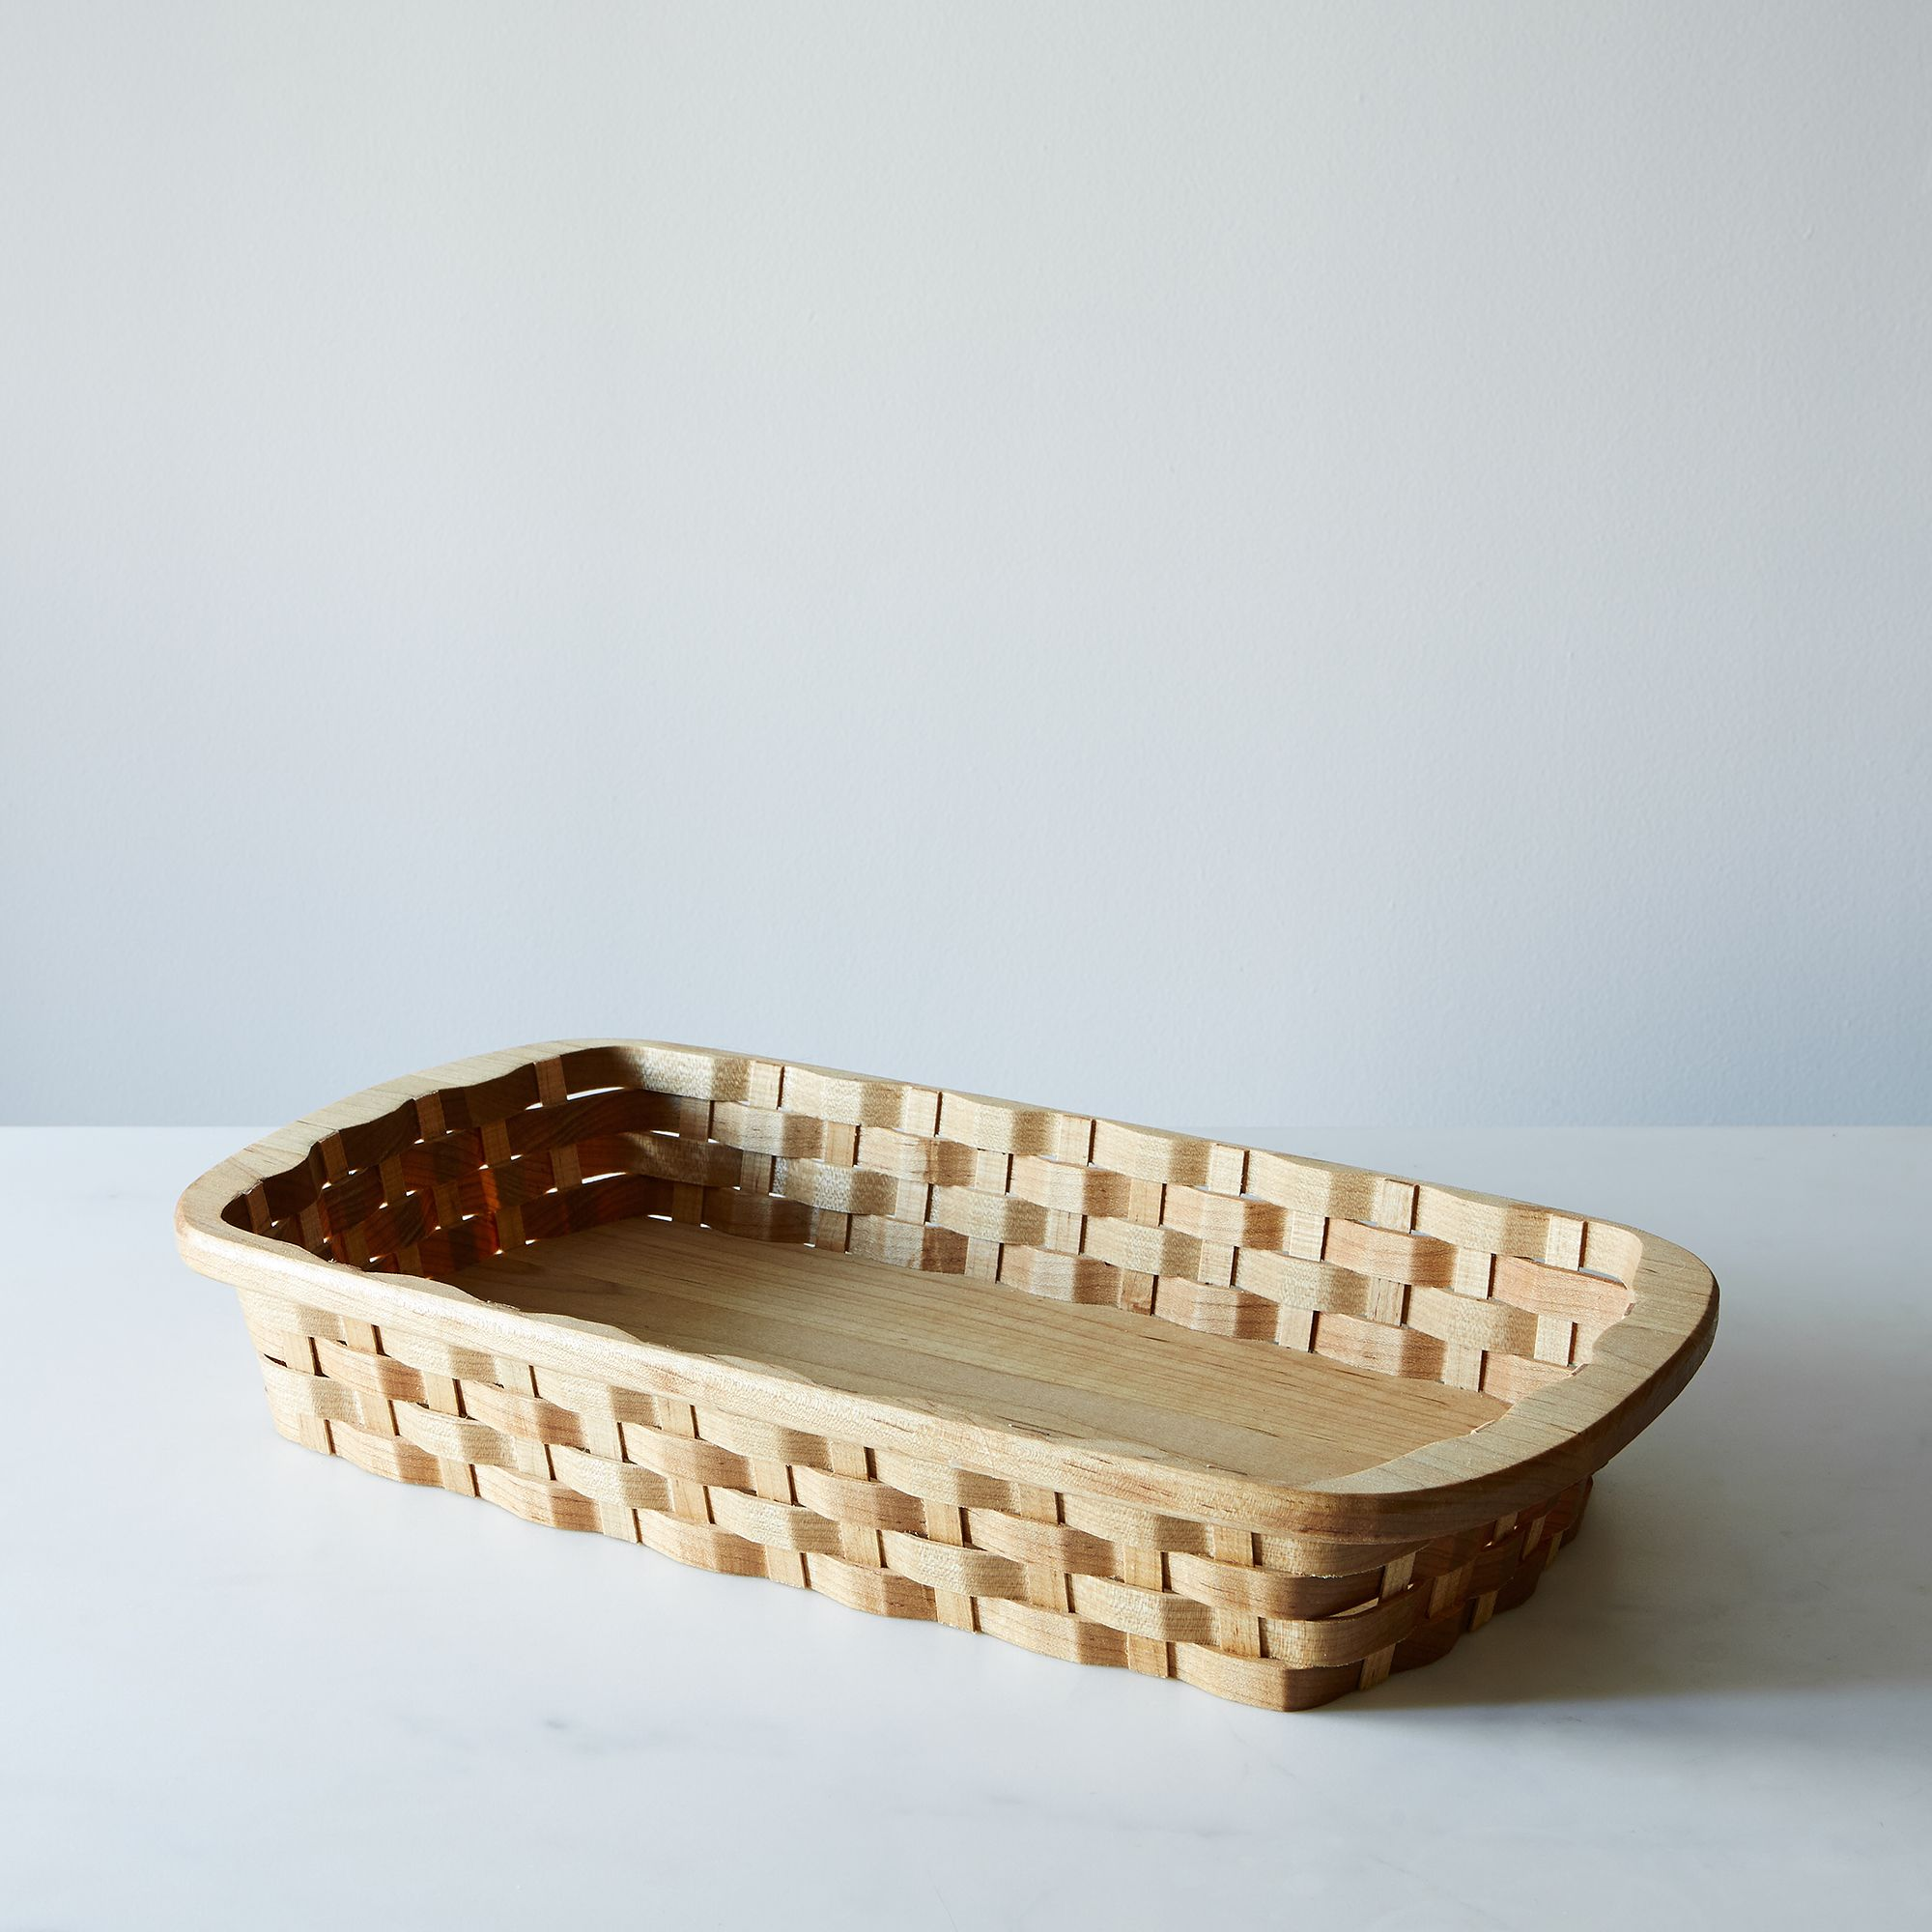 E5bdde28 a0f5 11e5 a190 0ef7535729df  baskets by debi wooden serving basket soft maple 6230 siloc